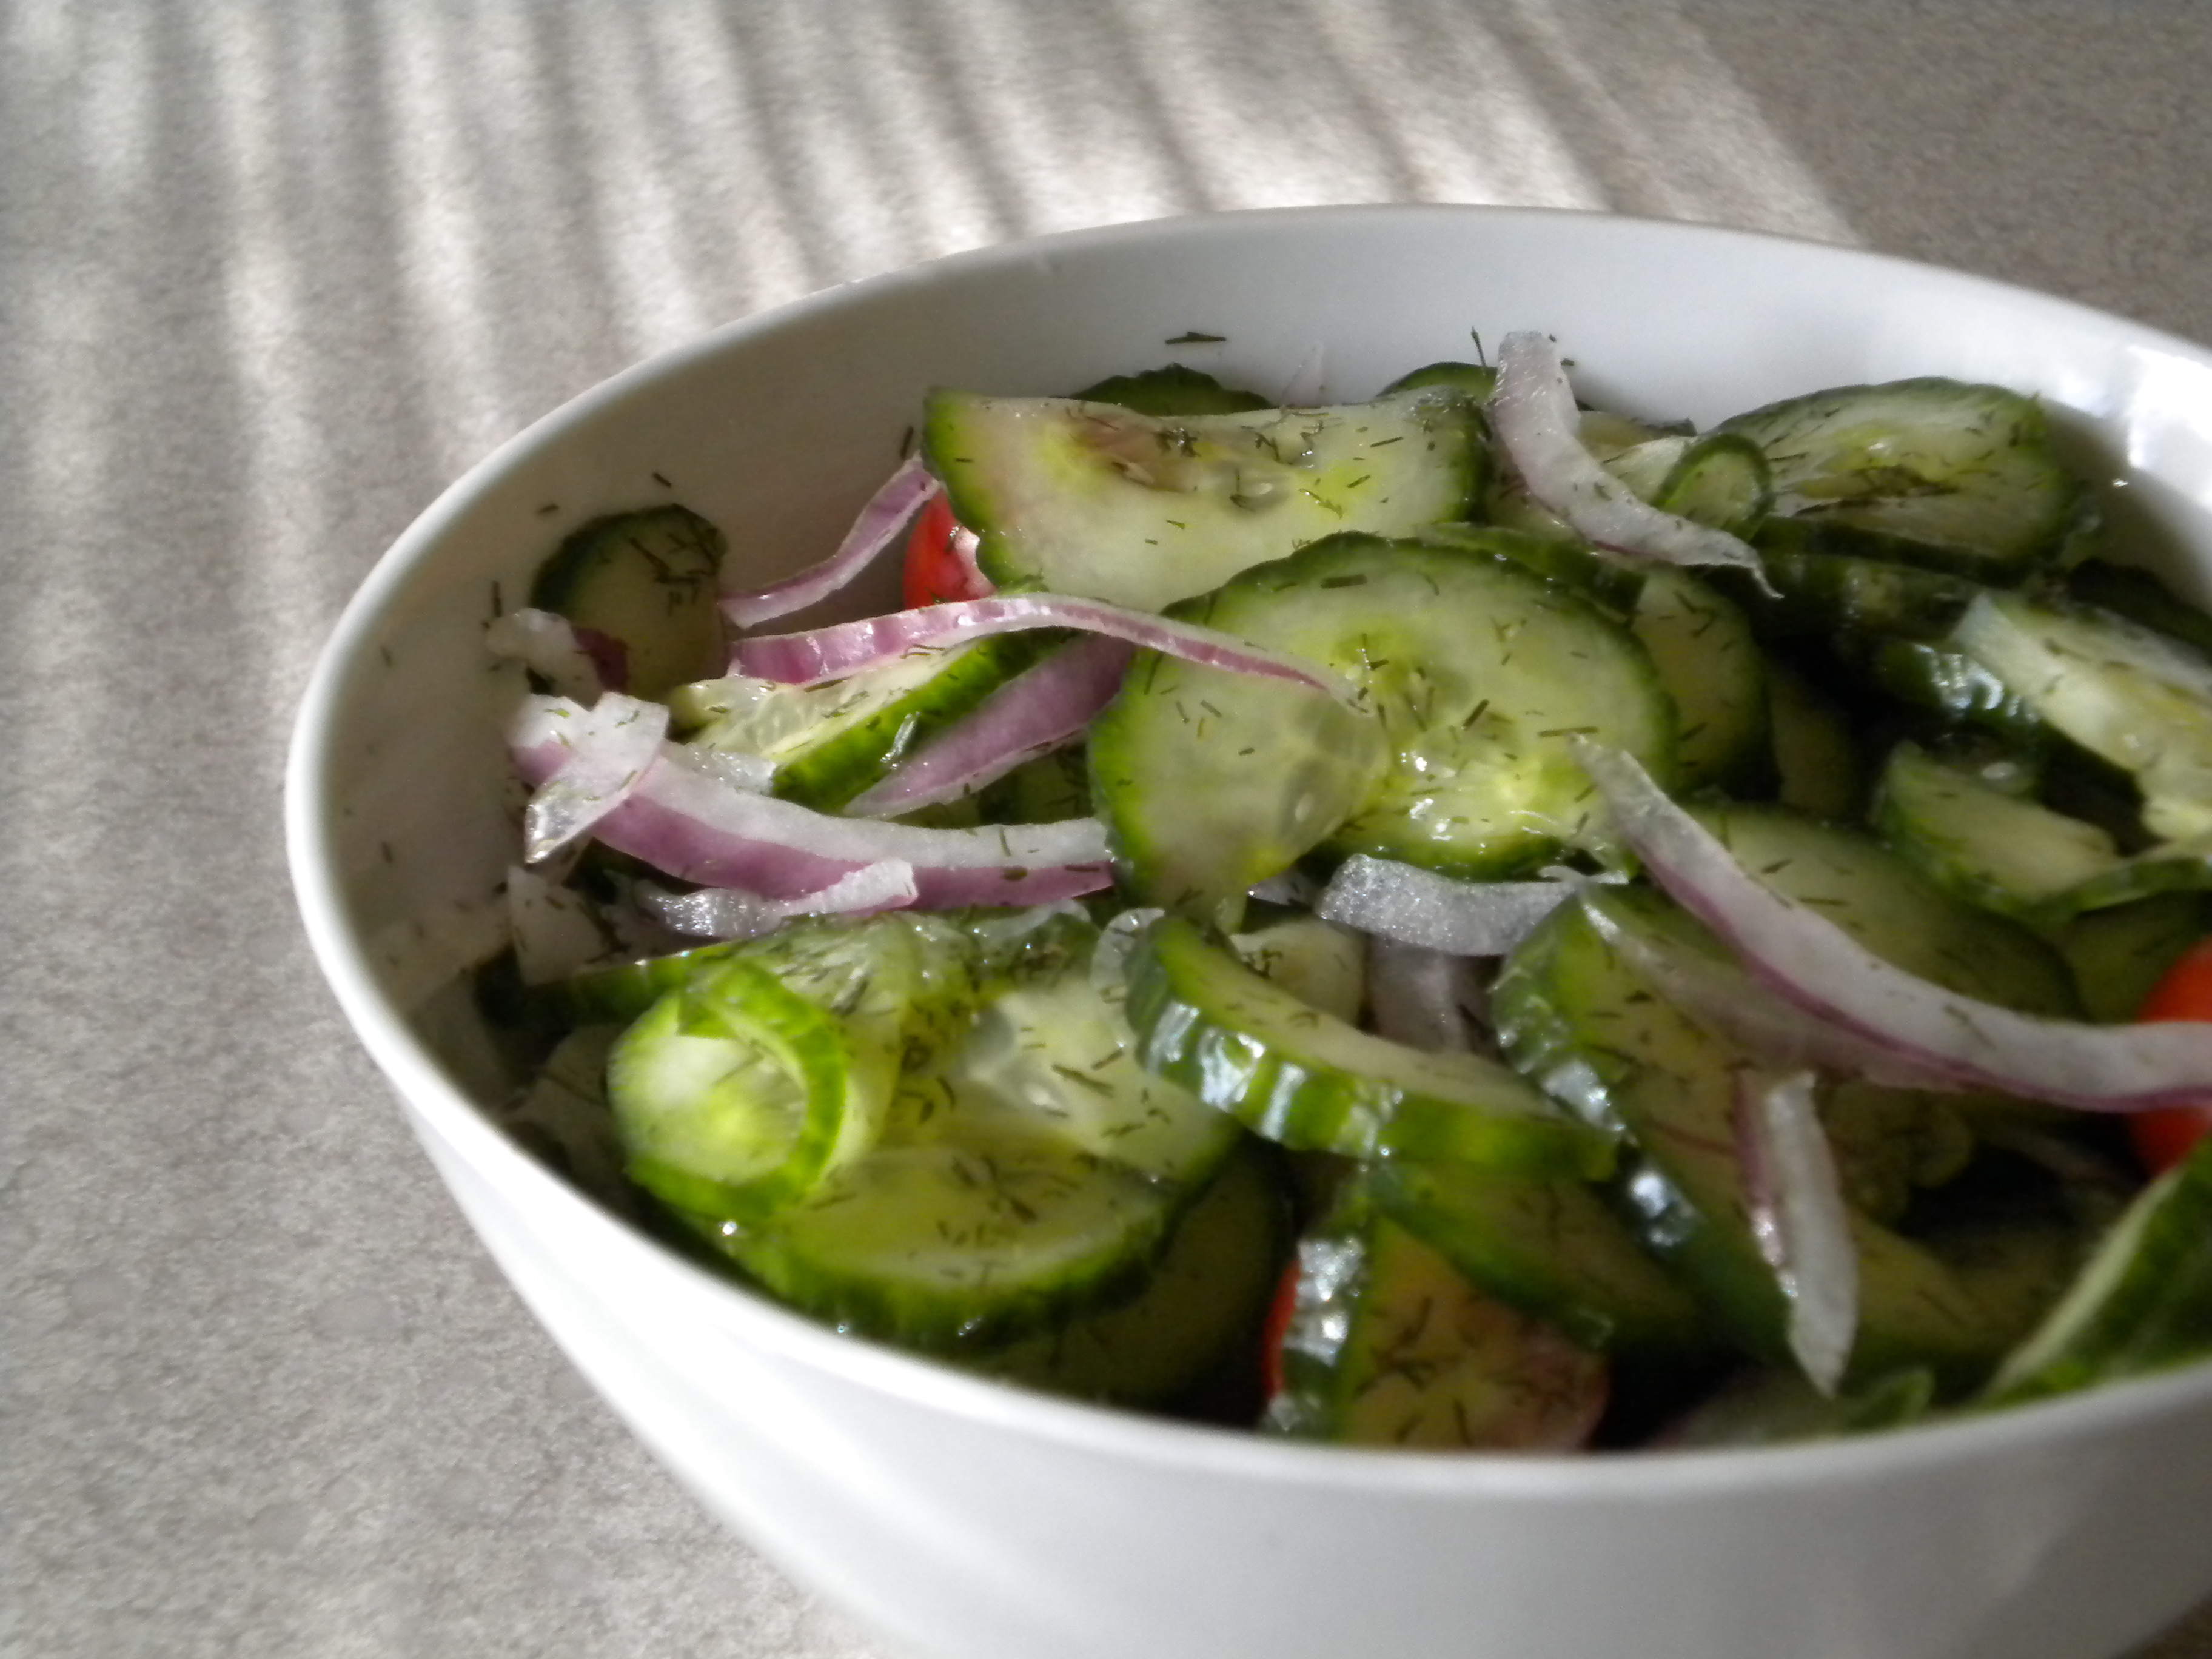 Wilted Cuke Salad